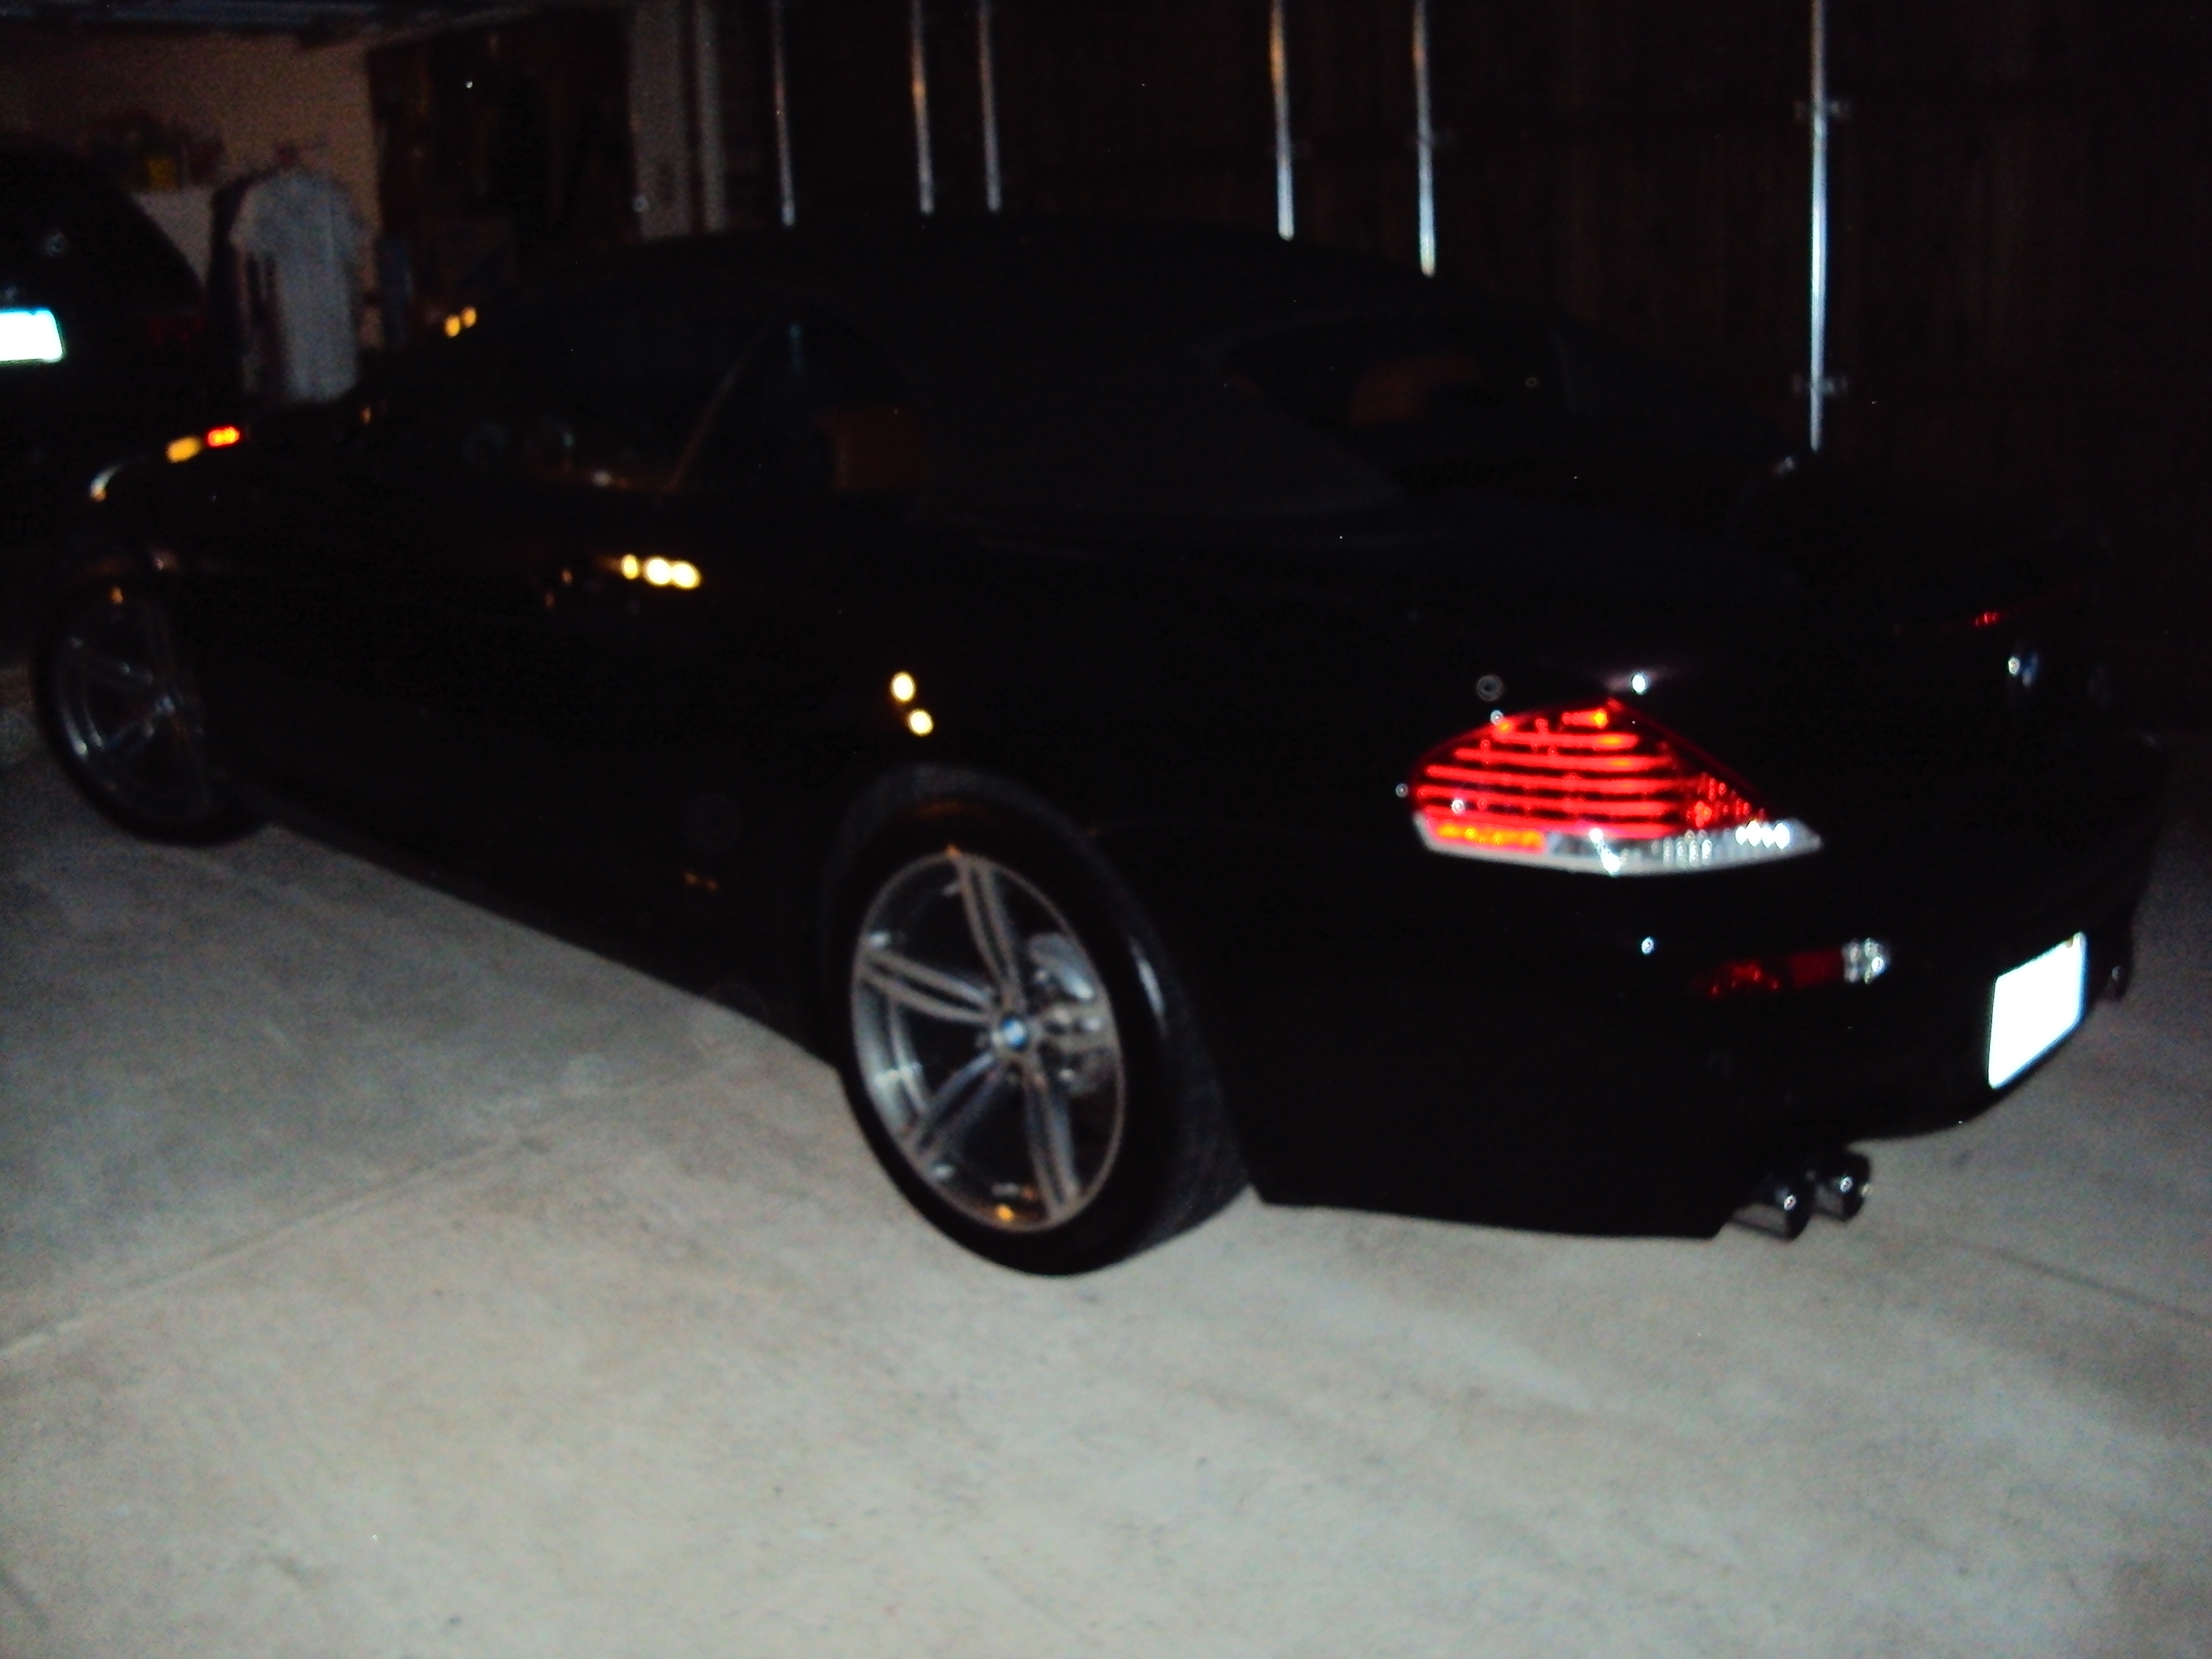 Wanted: 2007 Neiman Marcus M6 Convertible - BMW M5 Forum and M6 Forums